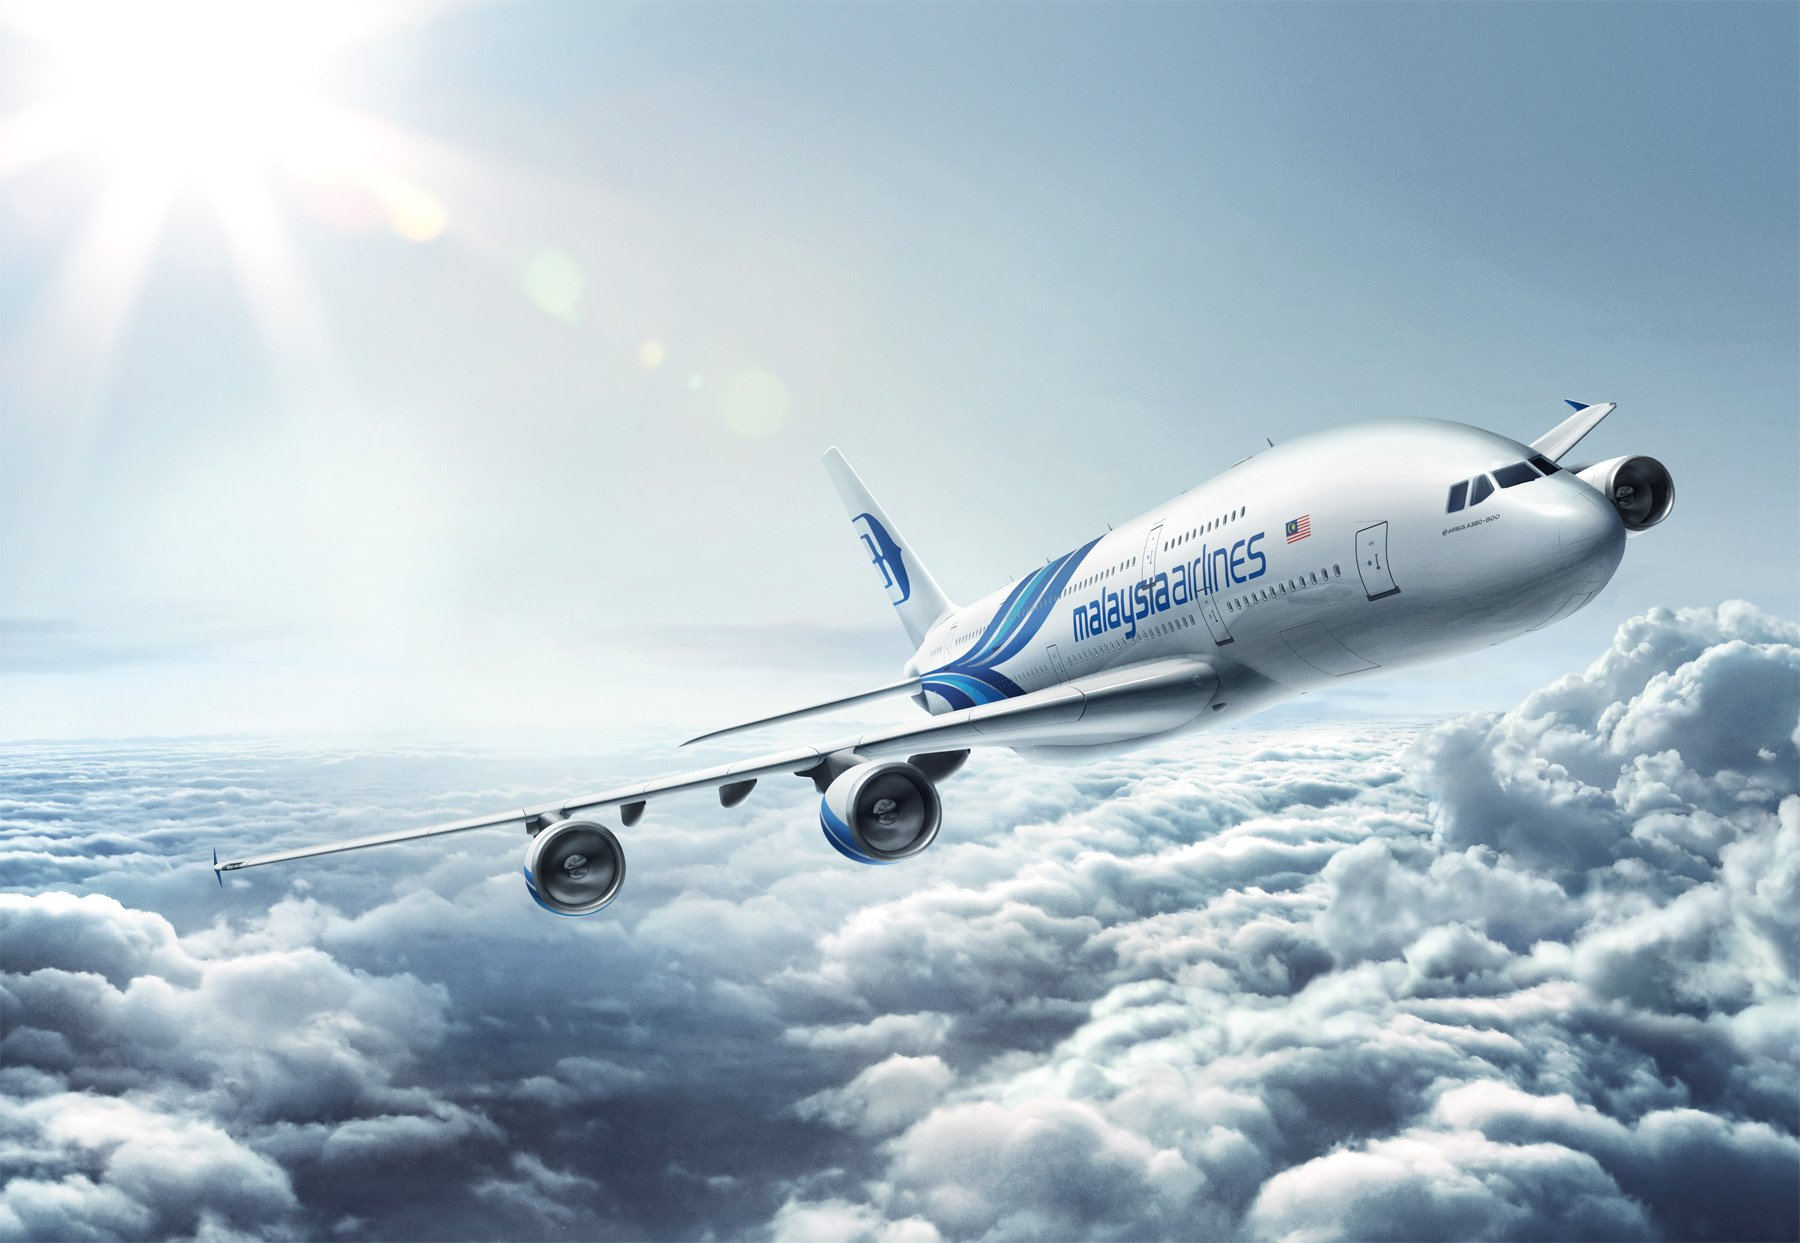 airbus a380 airliner plane airplane transport (45) wallpaper